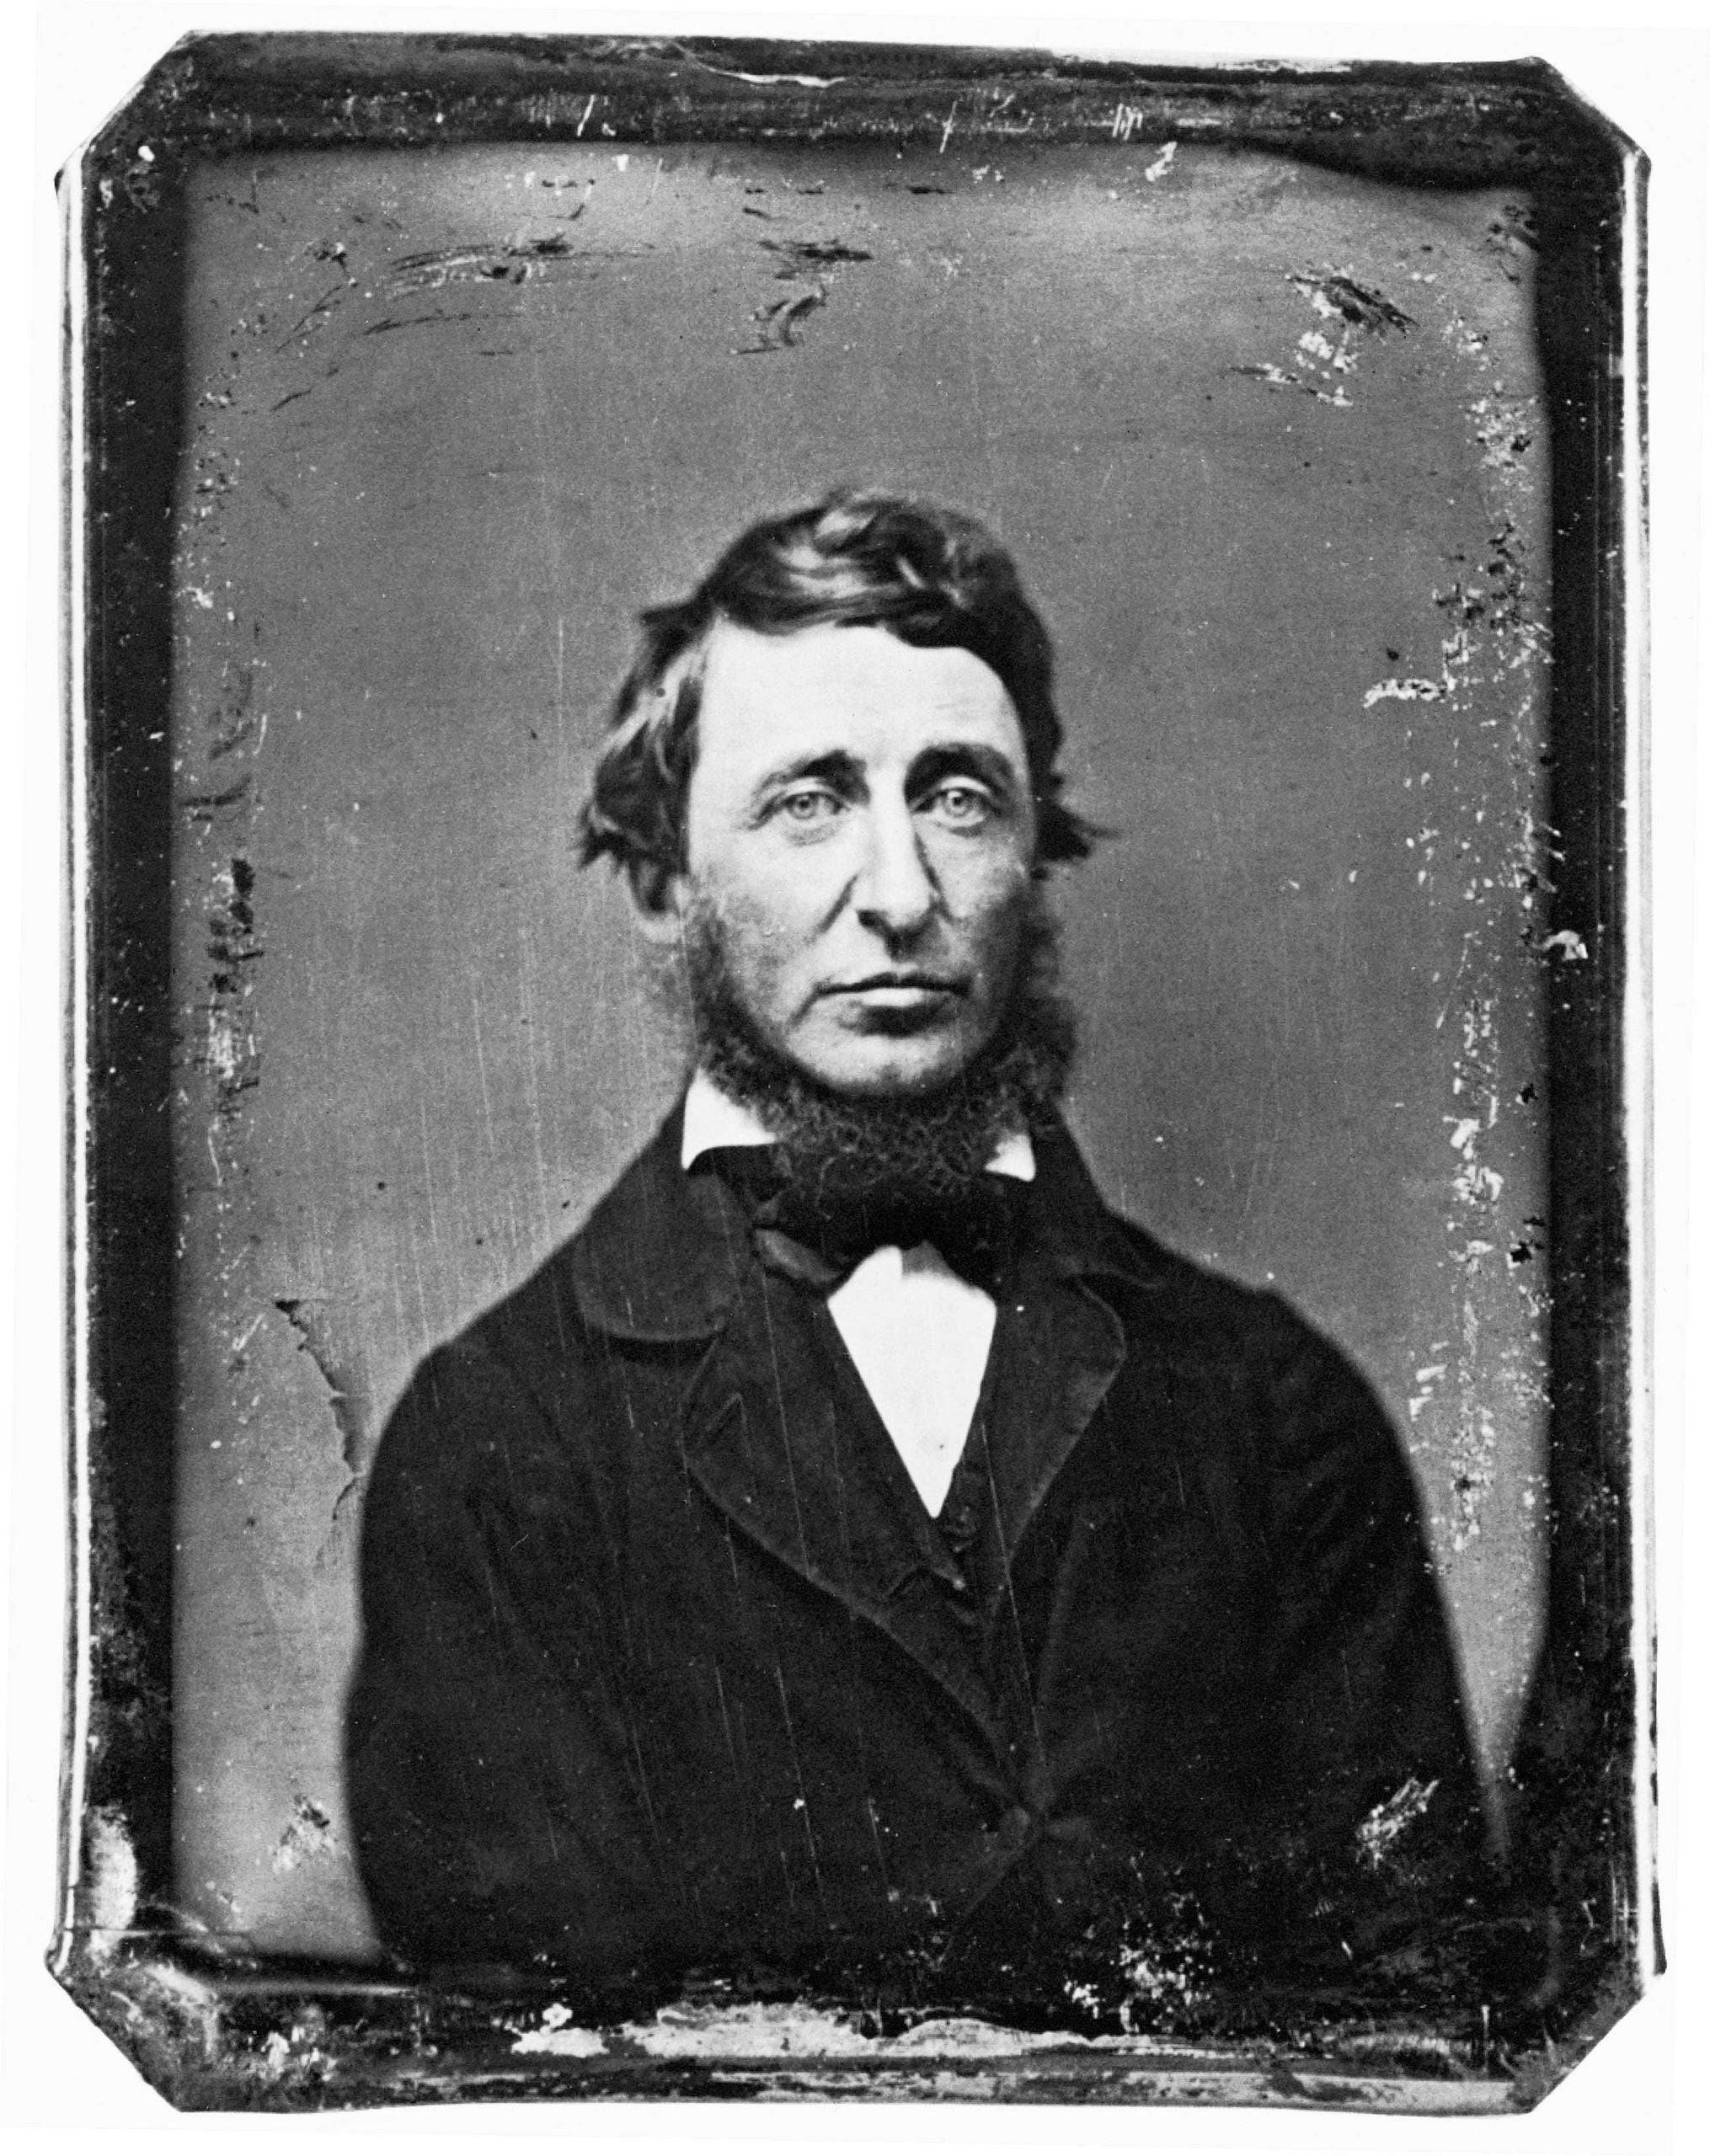 How Henry David Thoreau still surprises, 200 years after his birth